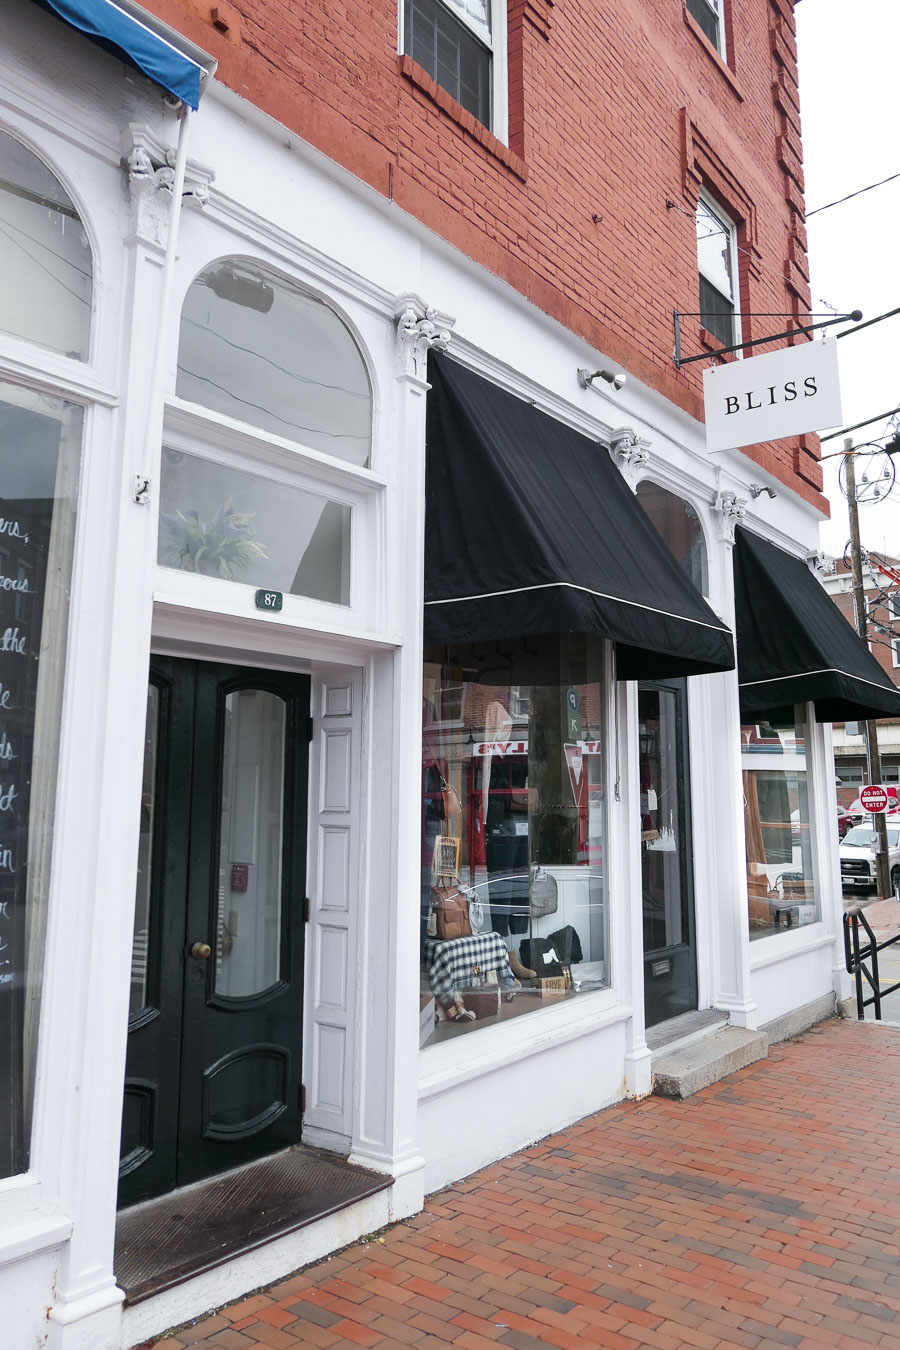 Portsmouth NH Things to Do Travel Guide - Portsmouth Shopping